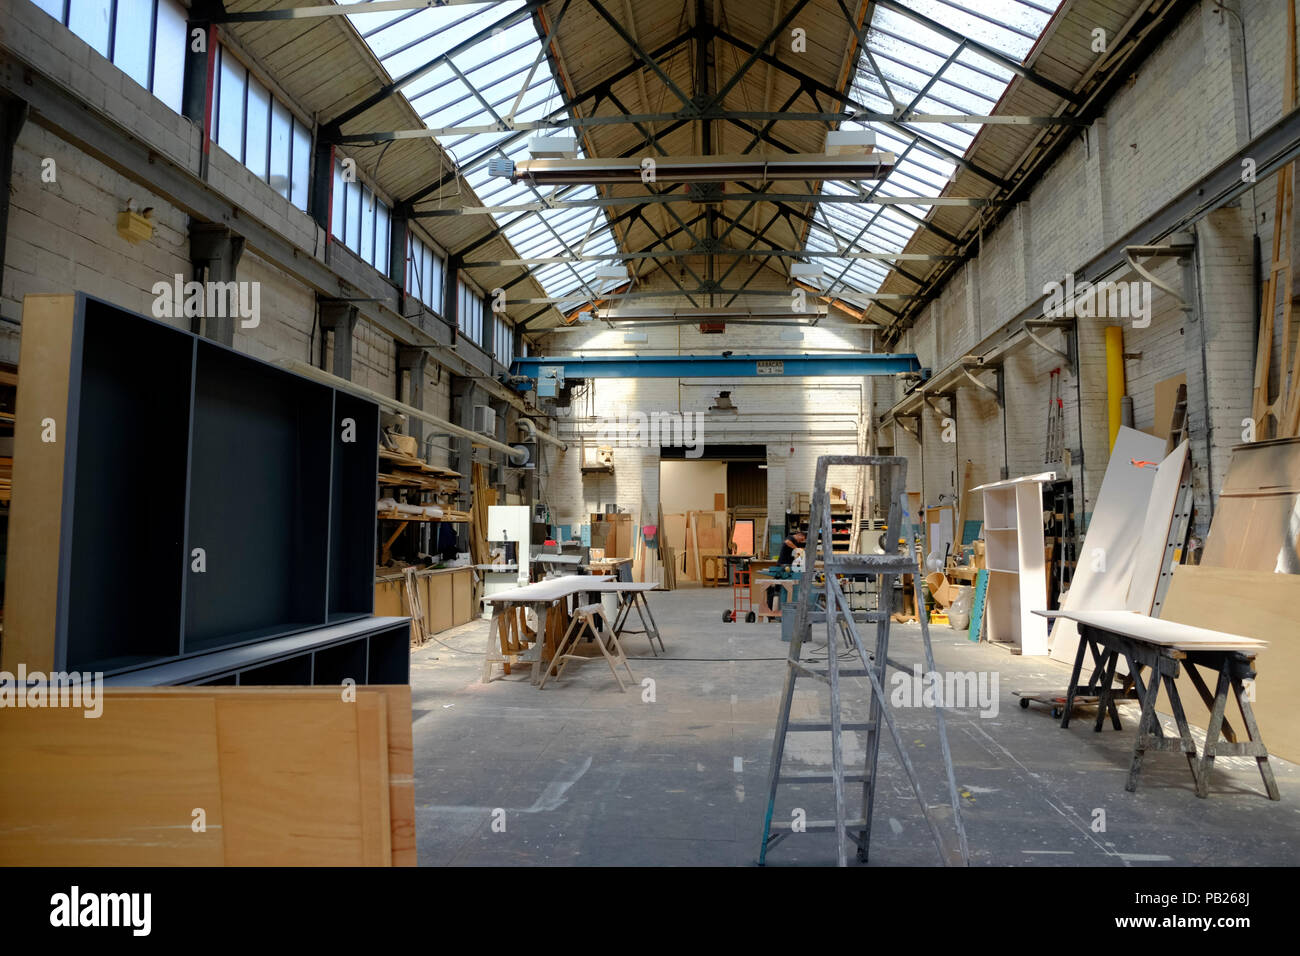 The Old Vic theatre scenery workshop on bristol harbourside as seen on a hot summers day with the door open. - Stock Image